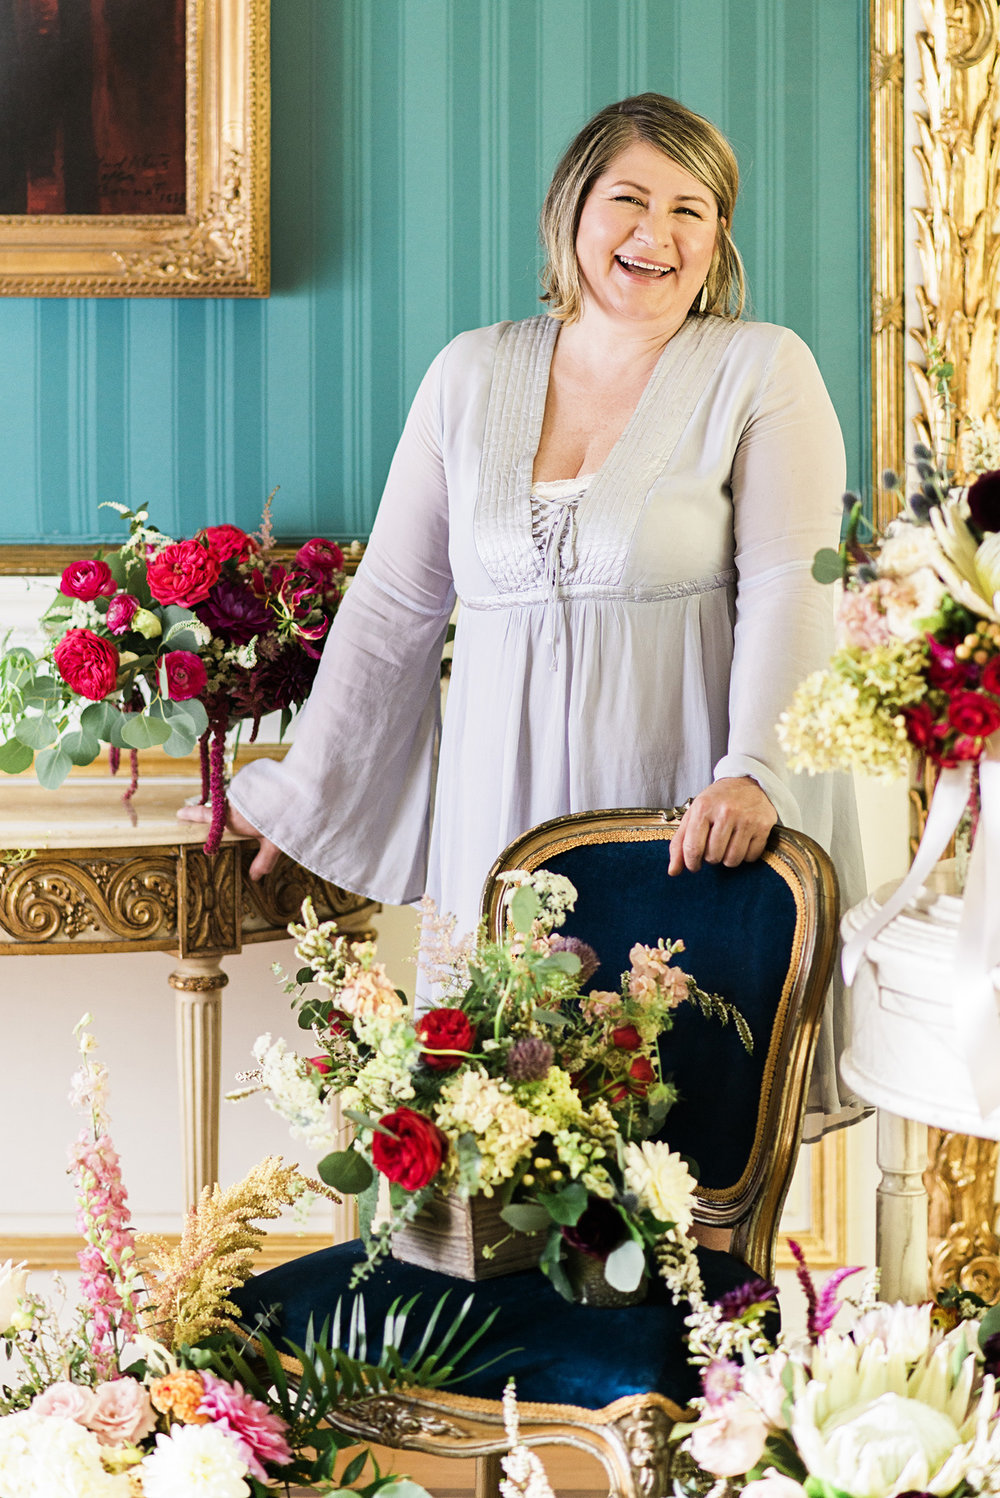 LANA BROWN  Lana Brown, owner and head designer of Fleur De Lis, has a passion for floral design and cutting edge techniques.  She brings her inspiration from a love of travel and cultural experience, providing a unique tone to all of the arrangements.  She started working at Fleur de Lis in 2011, when the studio was owned by the previous designer, and later inherited the business in 2015 to keep the legacy alive.  Being a small flower shop owner allows her to spread beauty and excitement in her local community. She has a deep affection for engagement stories and hearing about how couples come together, working side by side to help them adorn one of their most memorable dates. Whether it's weddings or a simple bouquet, Lana can make any client's vision fully blossom!